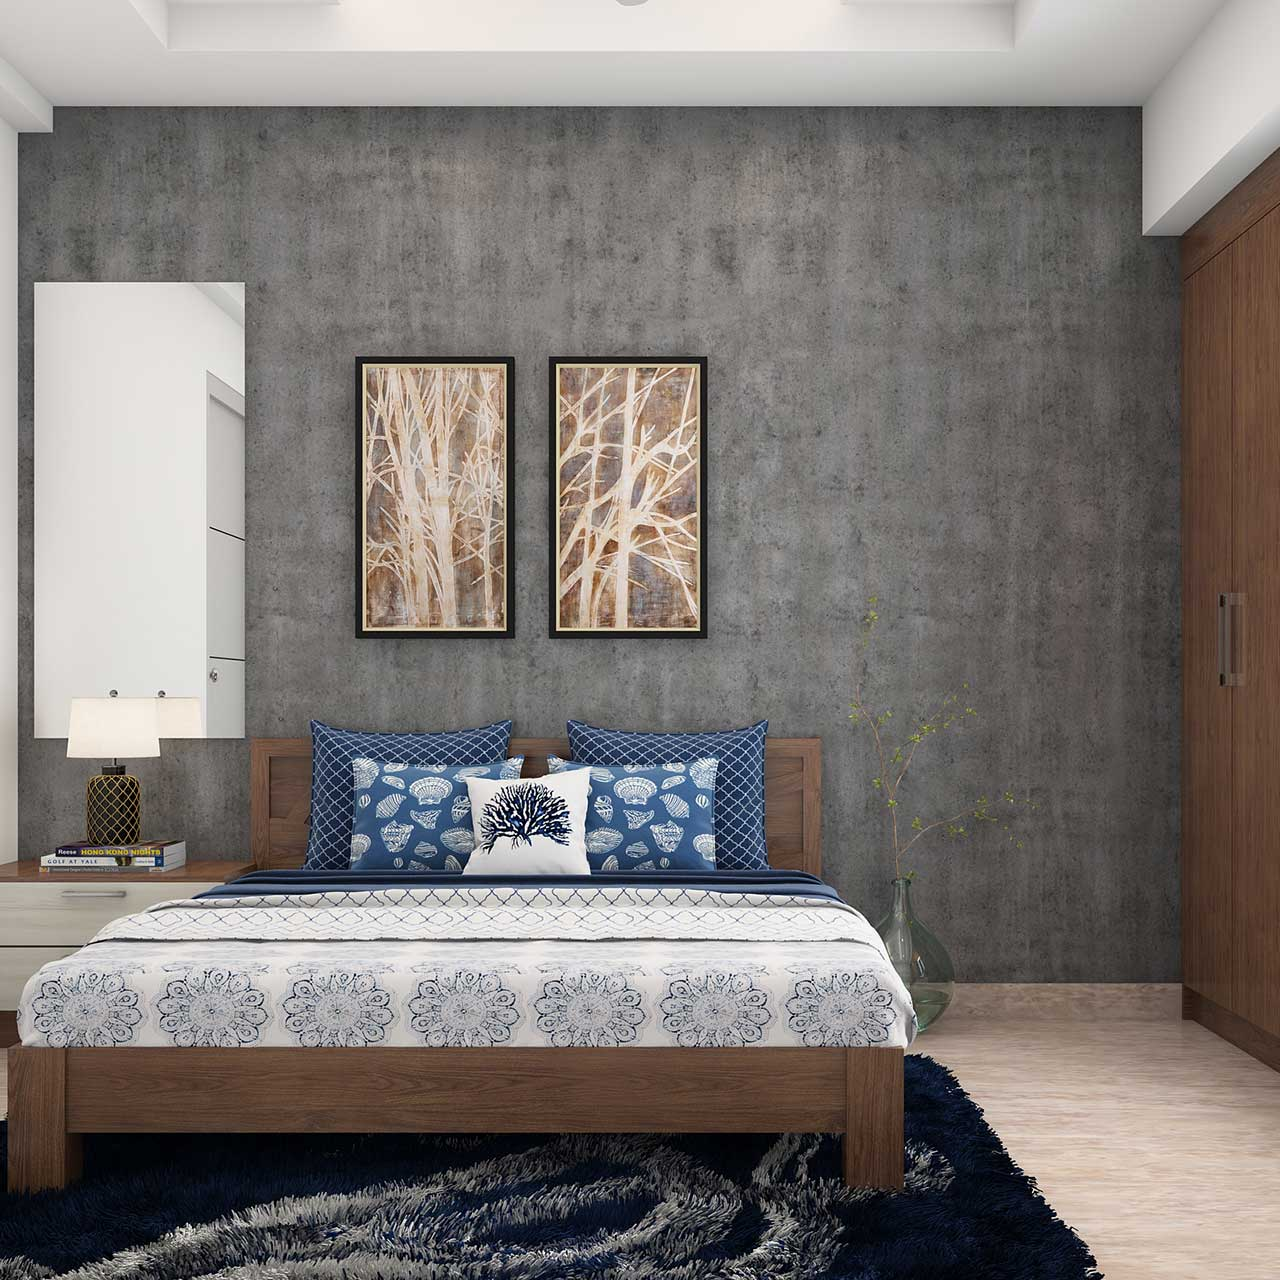 10 Interior Design Styles For Your Bedroom Design Cafe